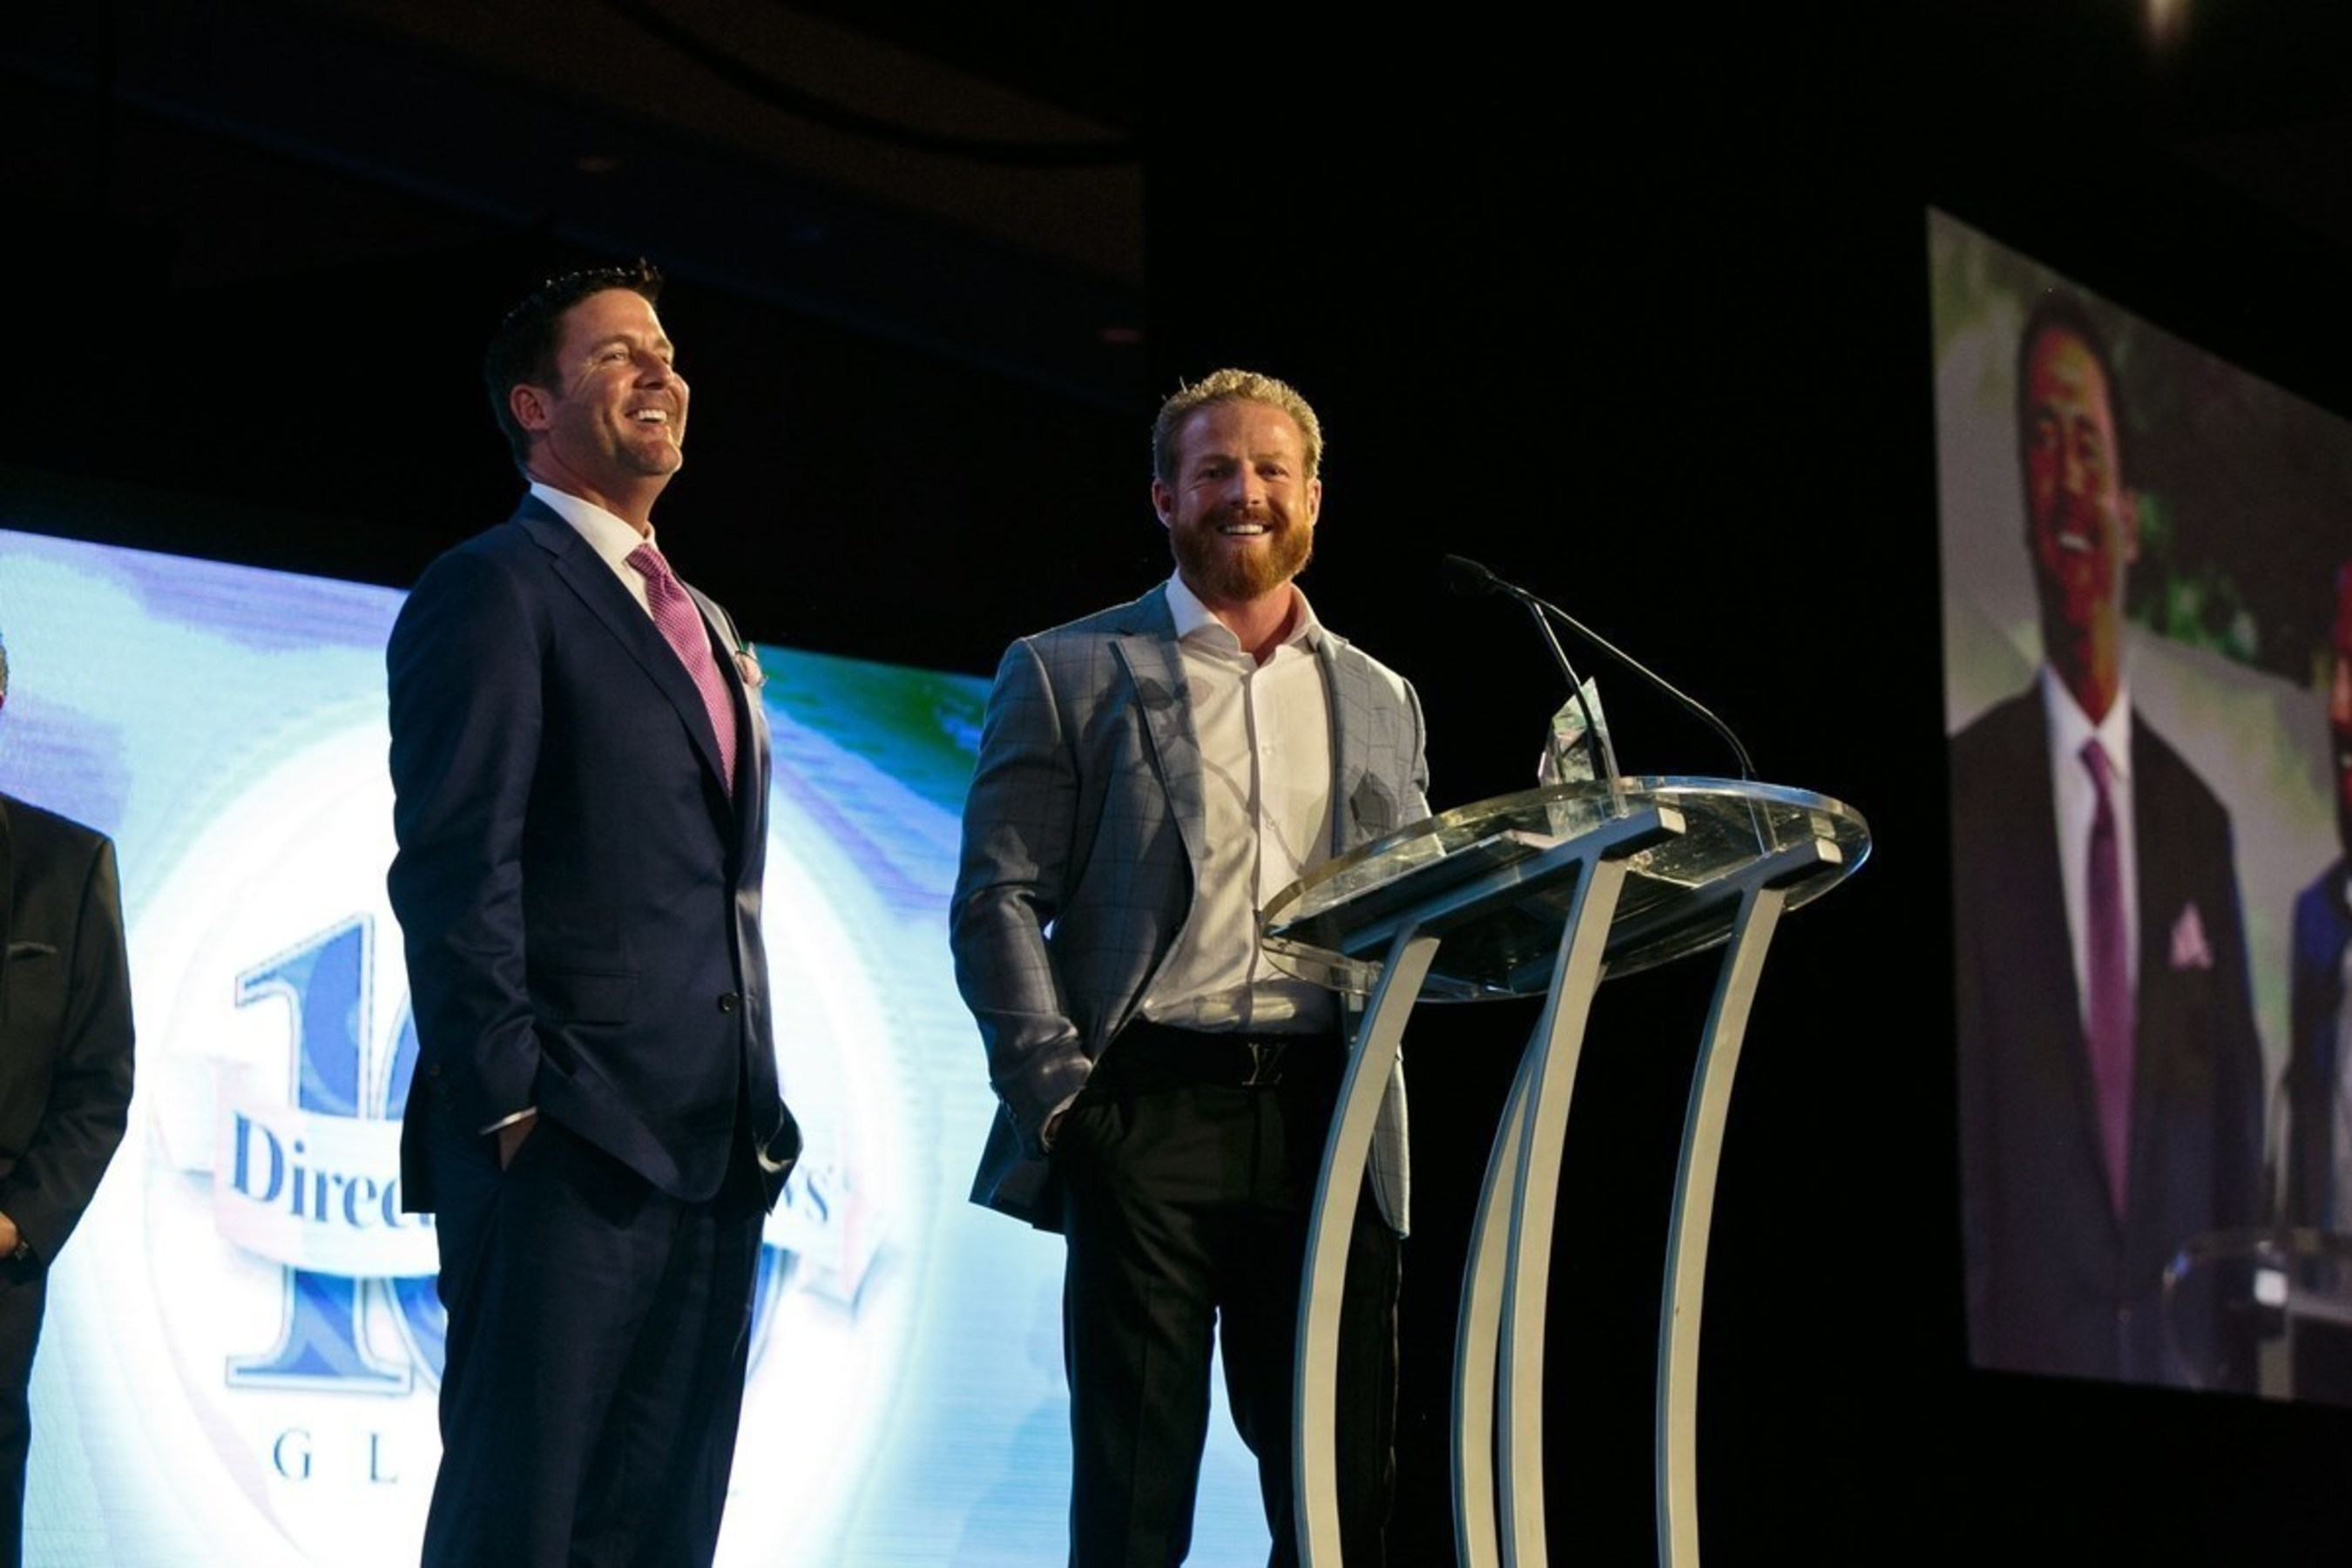 Le-Vel Co-CEOs, Co-Founders and Co-Owners Paul Gravette and Jason Camper accept the 2016 Bravo Growth Award during the DSN Global 100 Celebration, sponsored by SUCCESS Partners and held April 7 at Dallas' Omni Hotel.